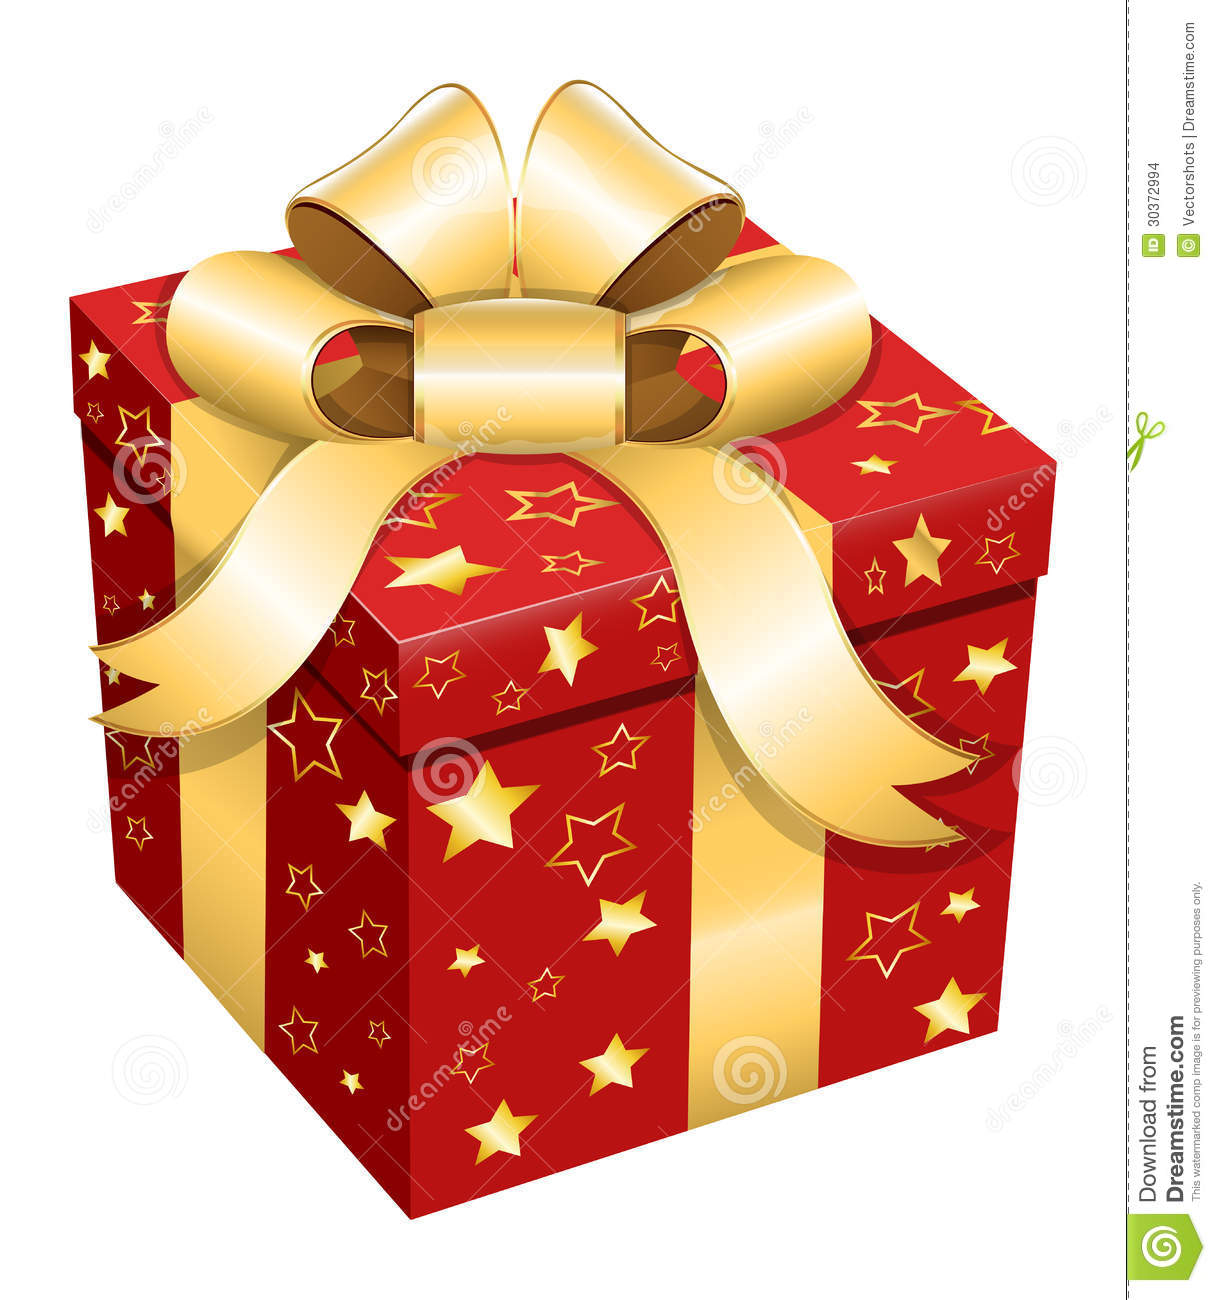 Gift Box Christmas Vector Illustration Stock Vector Illustration